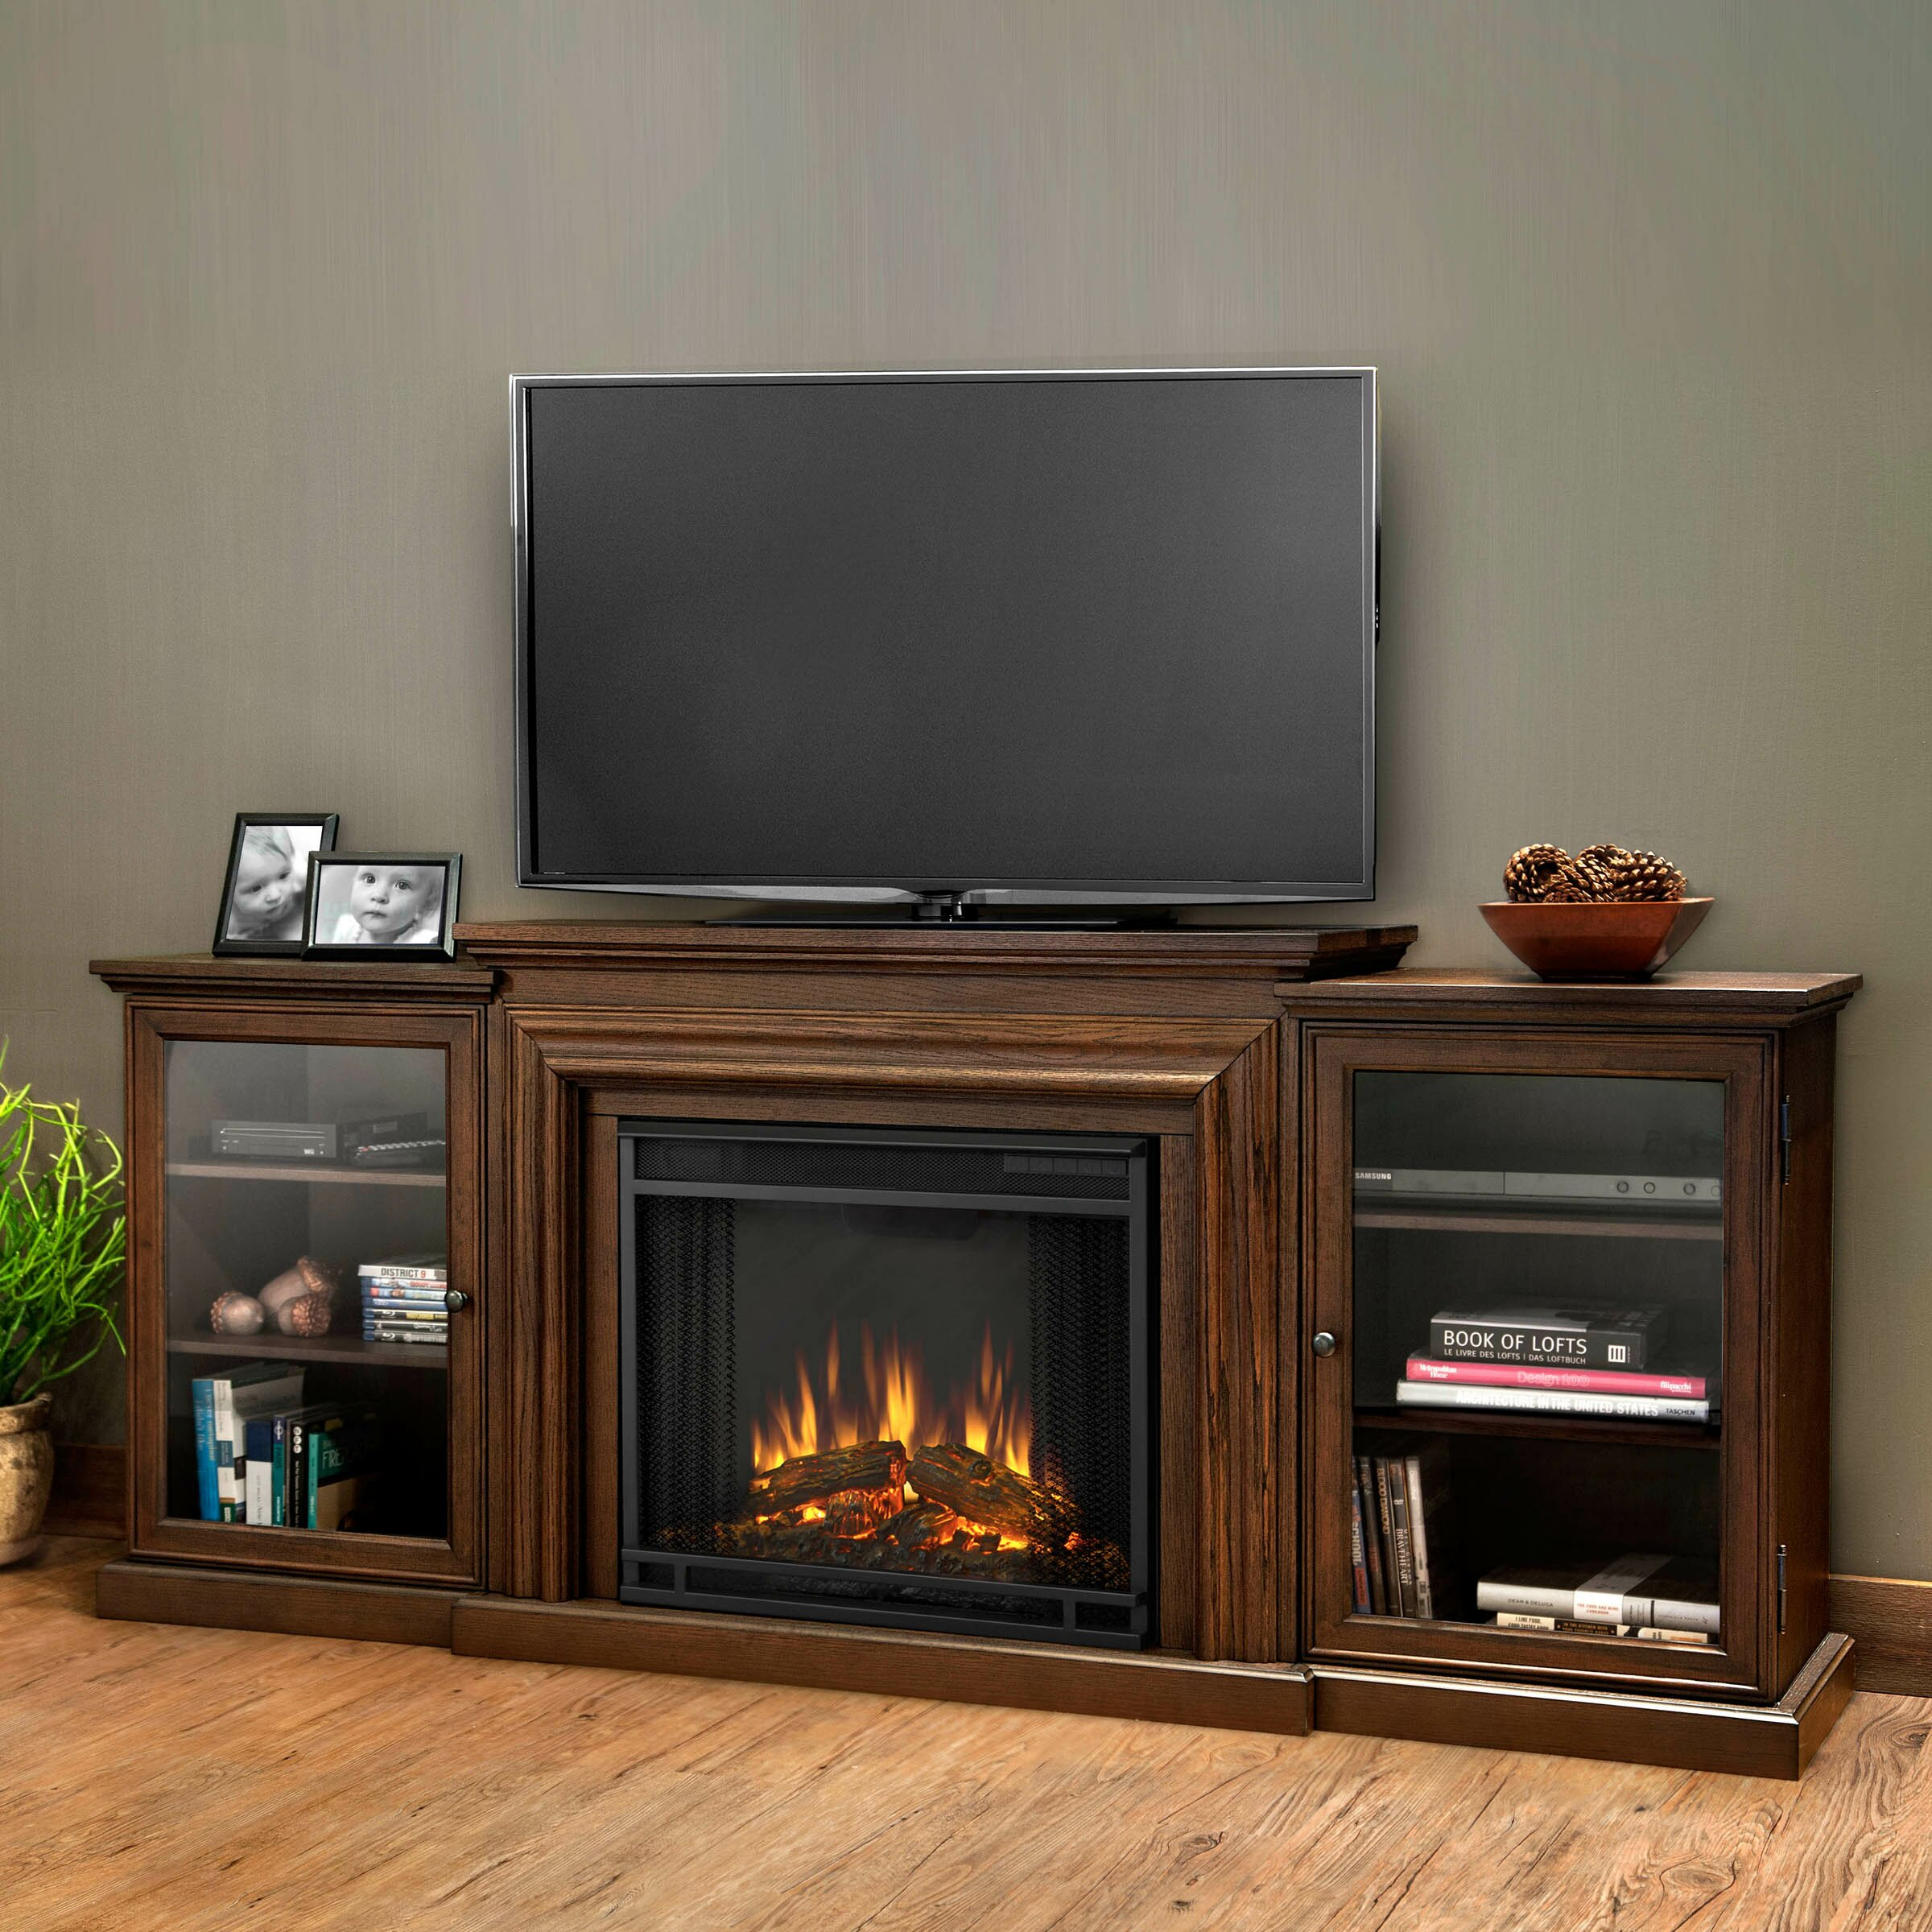 Real Flame Frederick Tv Stand With Electric Fireplace Reviews Wayfair